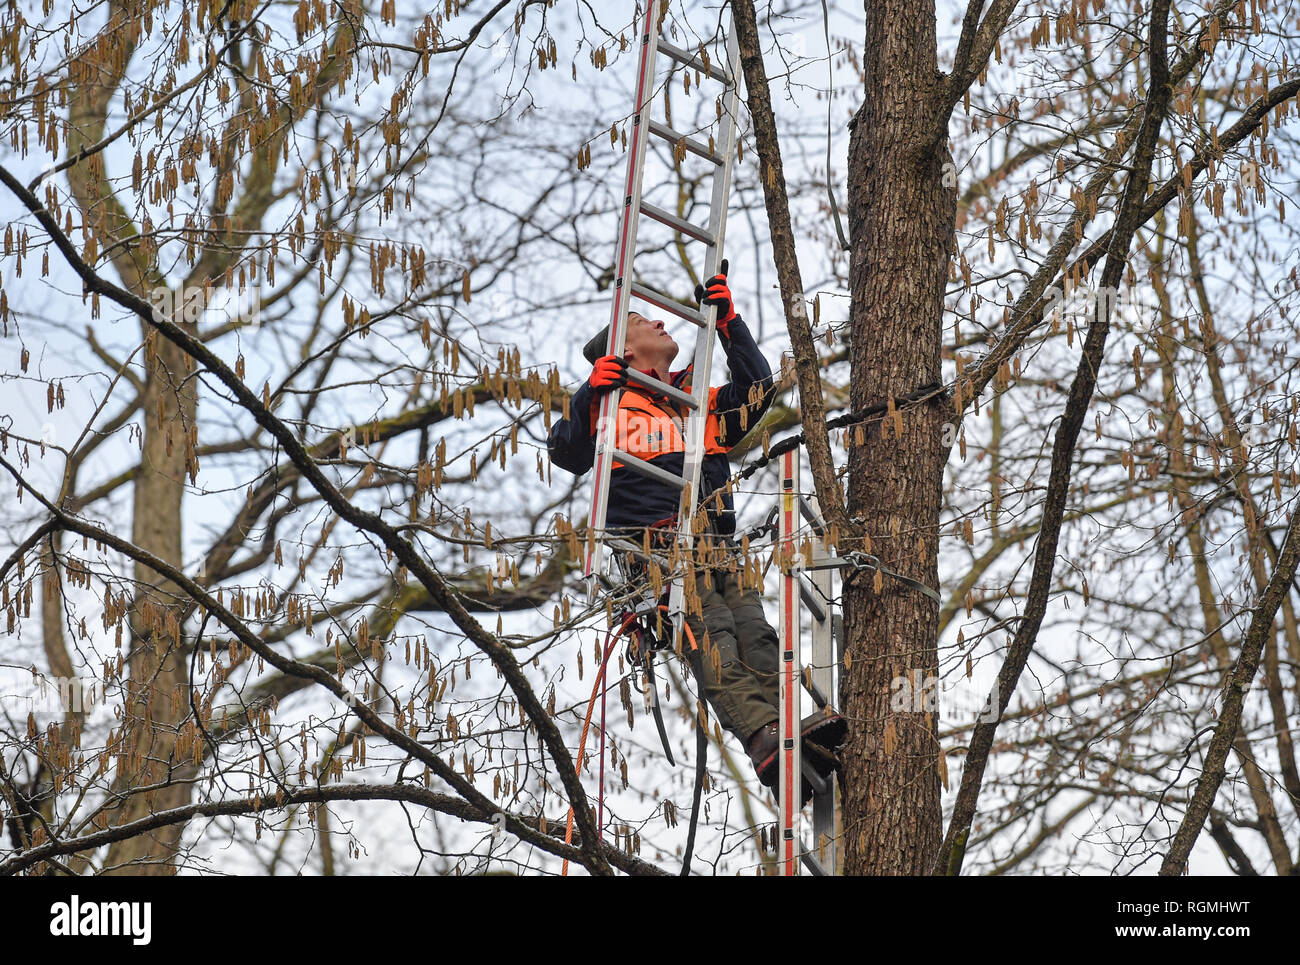 29 January 2019, Brandenburg, Sauen: Branko Eisermann, a forester from the Forst Brandenburg state enterprise, climbs up a tree hazel (Corylus colurna) ladder in the forest of the August Bier Foundation. The tree hazel is the large representative of the well-known hazelnut bush. Employees of the Brandenburg State Forest Service and the Humboldt University of Berlin harvested so-called 'Reiser' (rice harvesters) in the crowns of the tree hazel for the propagation of this tree species. The forest district Sauen has a very long and traditional history, which was founded before August Biers (1861- - Stock Image